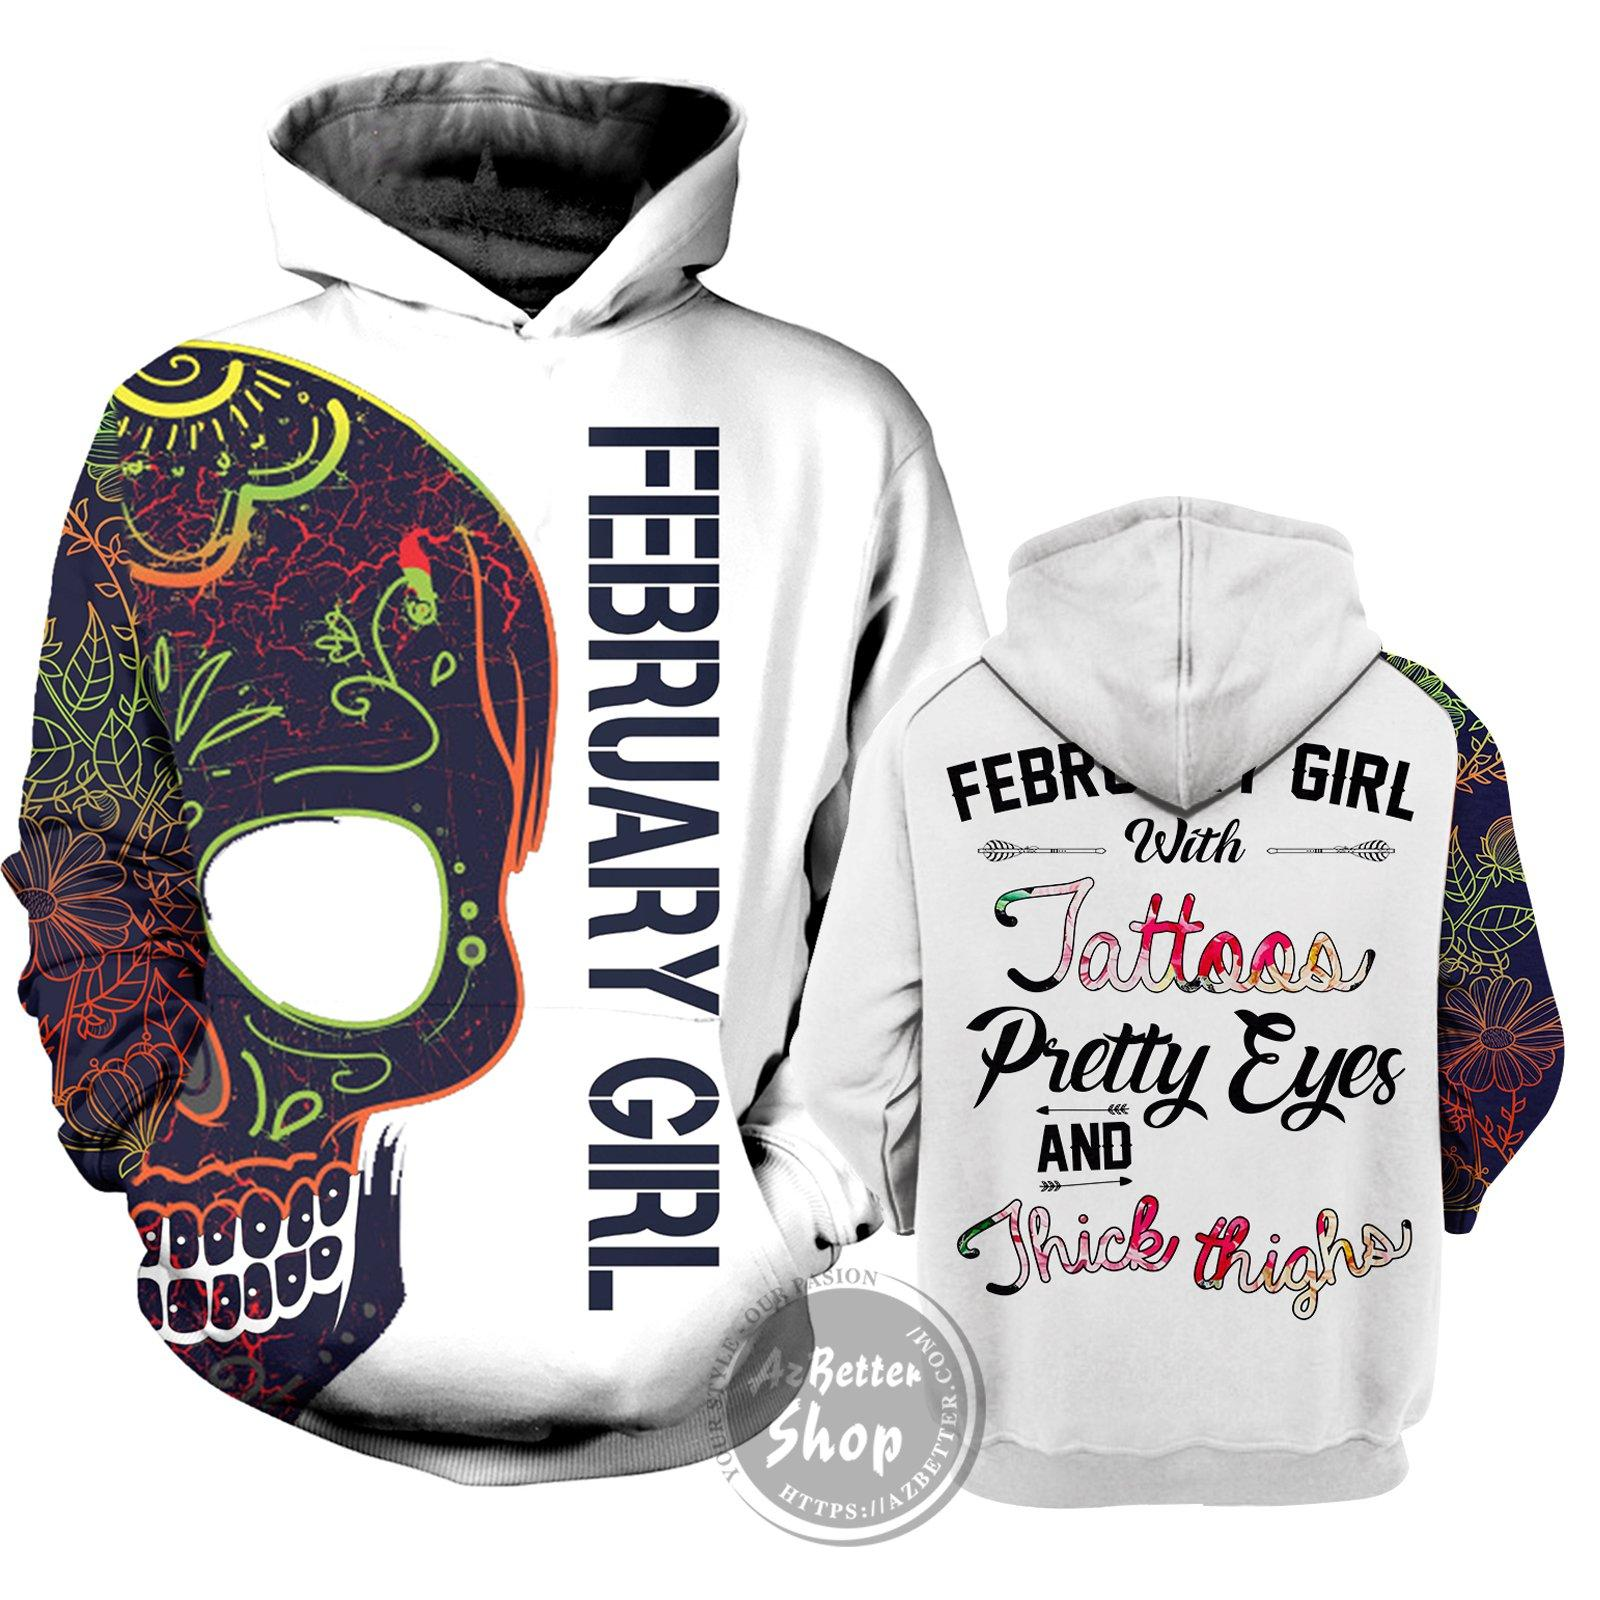 February girl with tatoos pretty eyes and thick thighs 3d hoodie 1